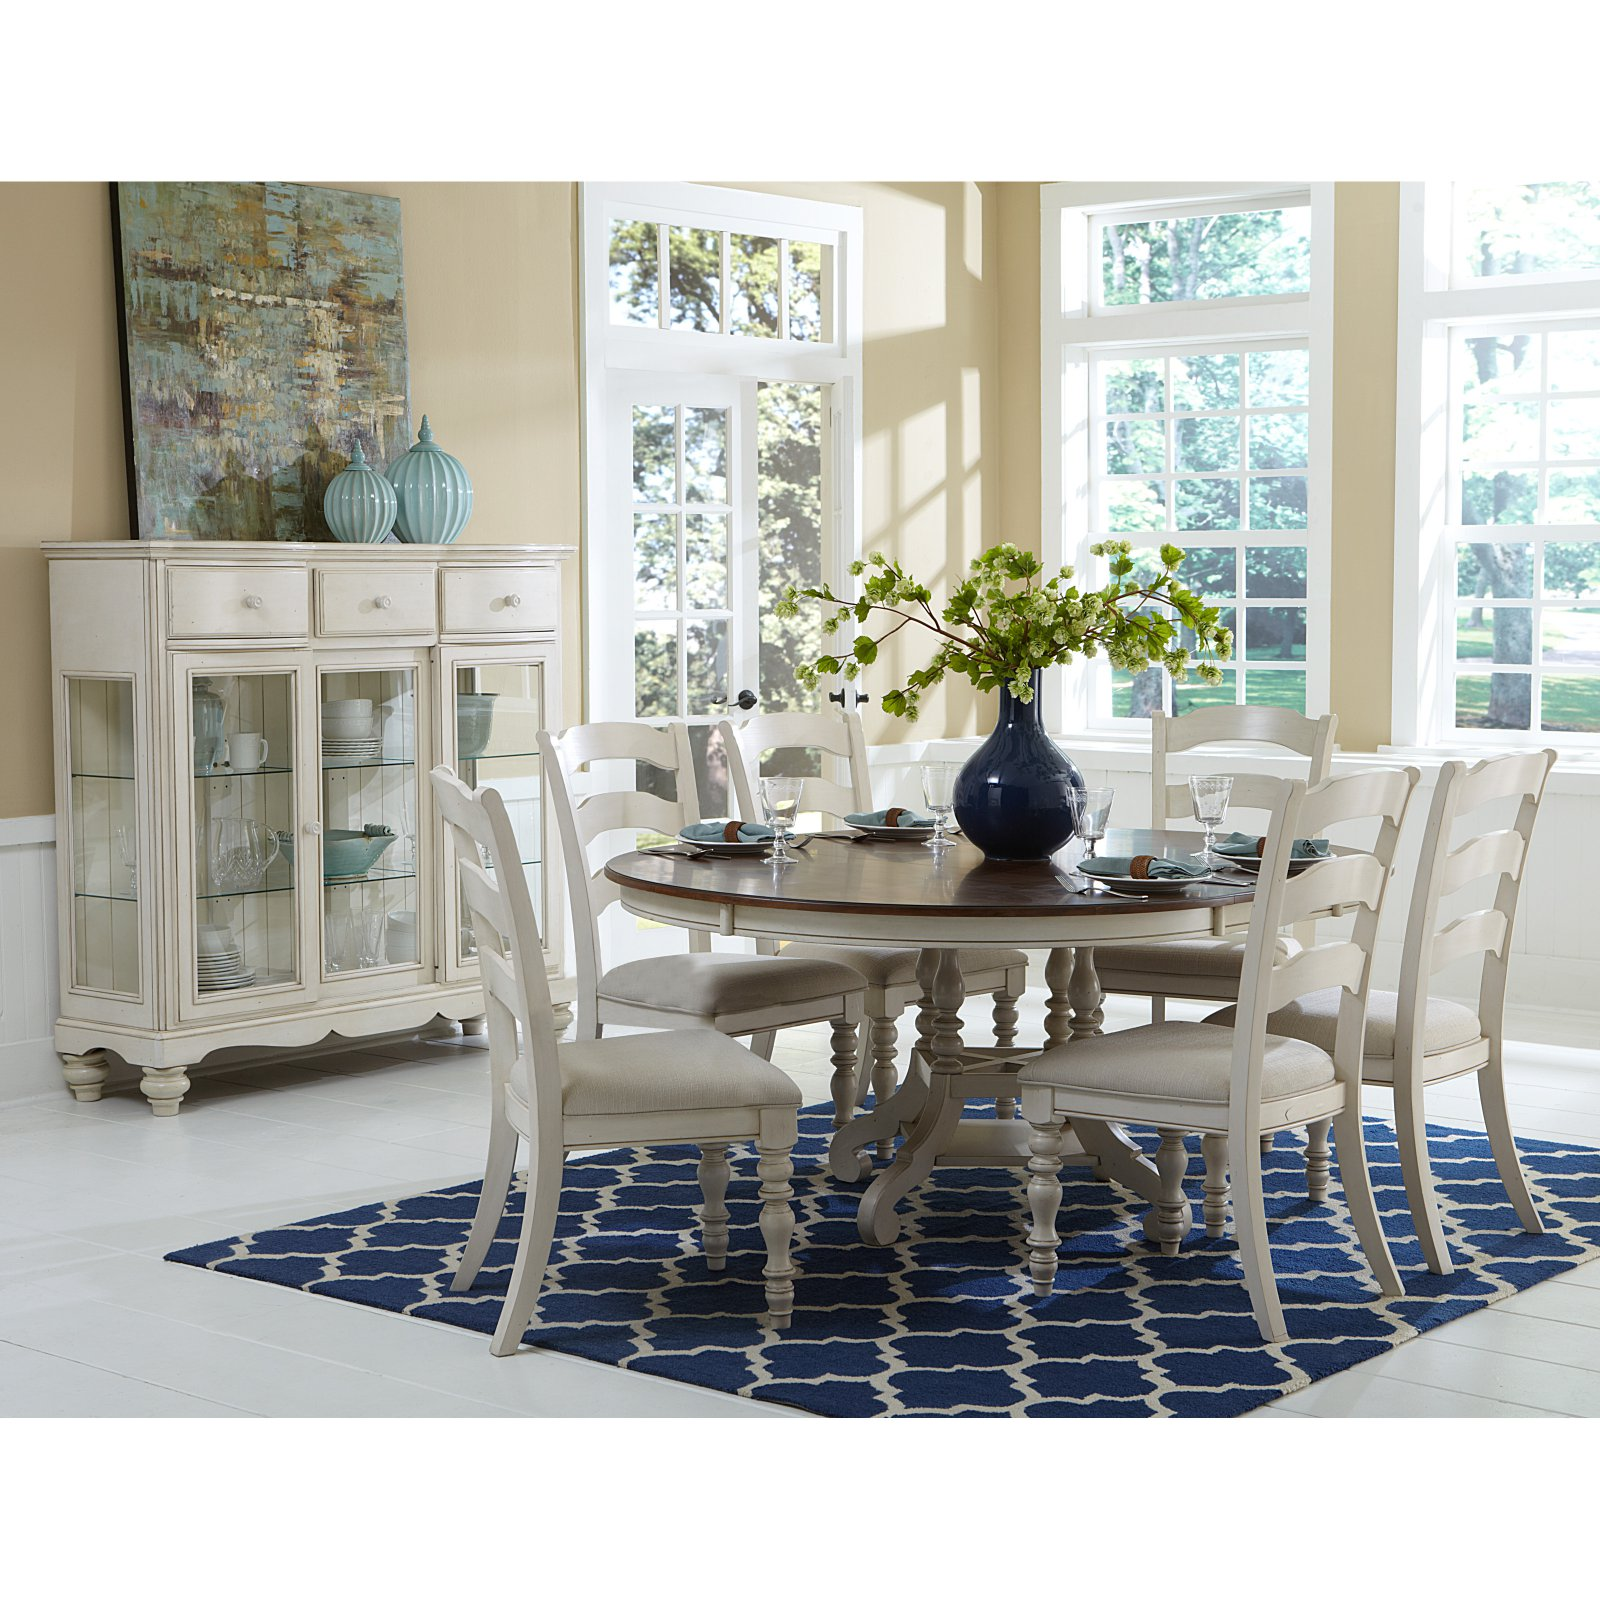 Hillsdale Furniture Pine Island 7-Piece Round Dining Set with Ladder Back Chairs